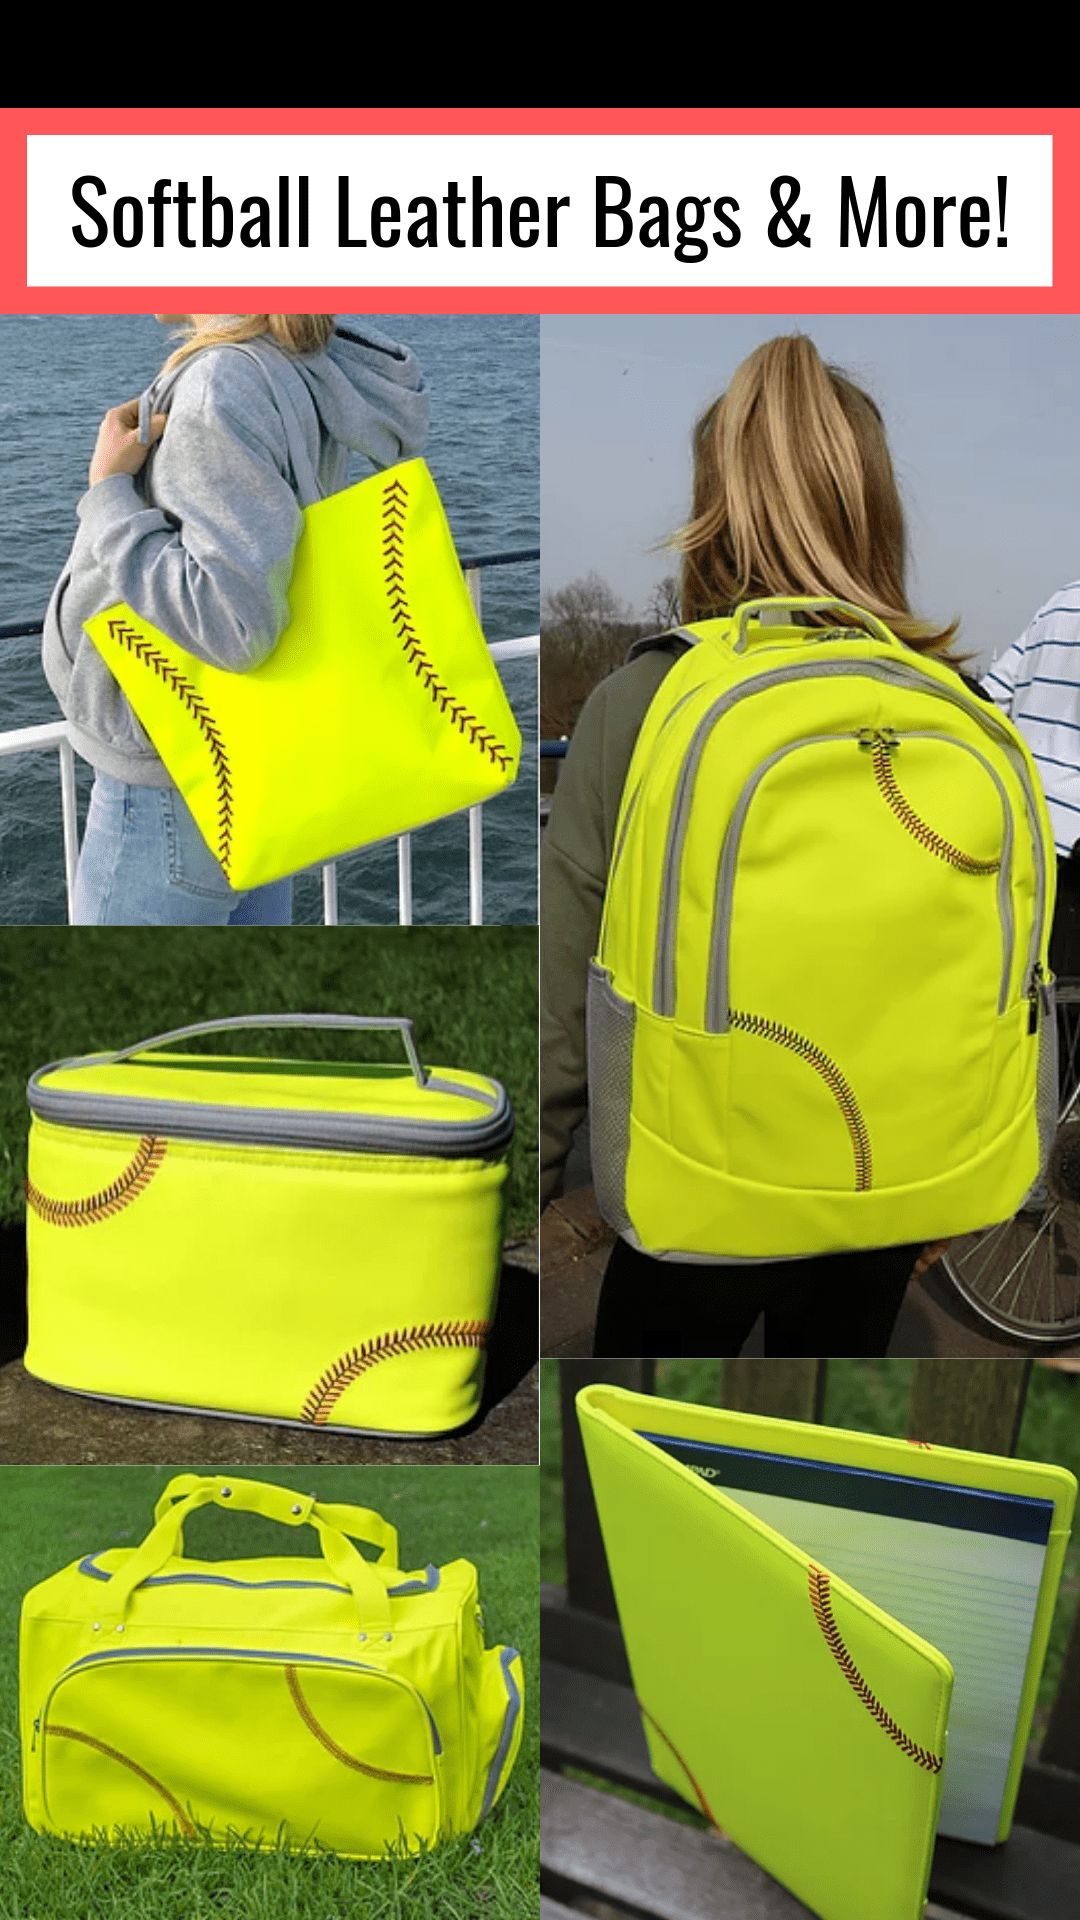 Softball Leather Bags & More